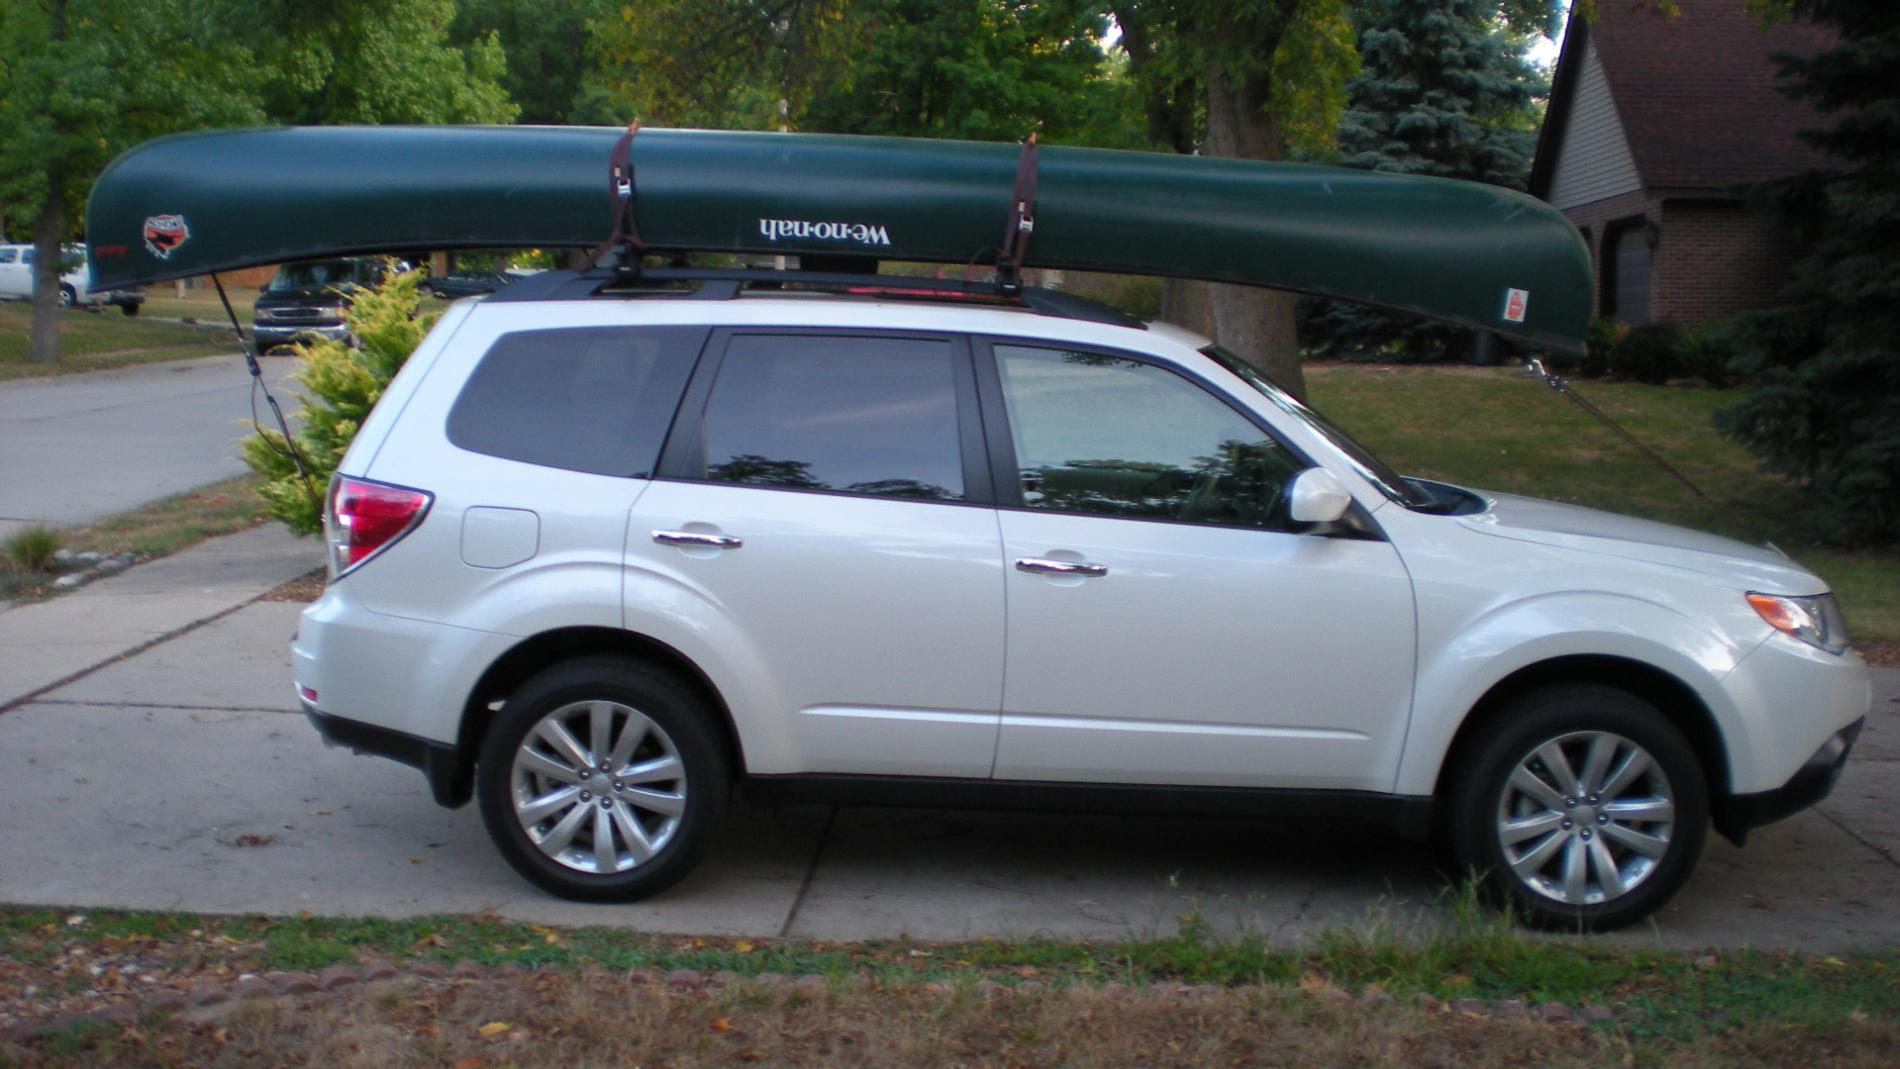 Bwca Anybody Have A Roof Rack For A 4runner Sport